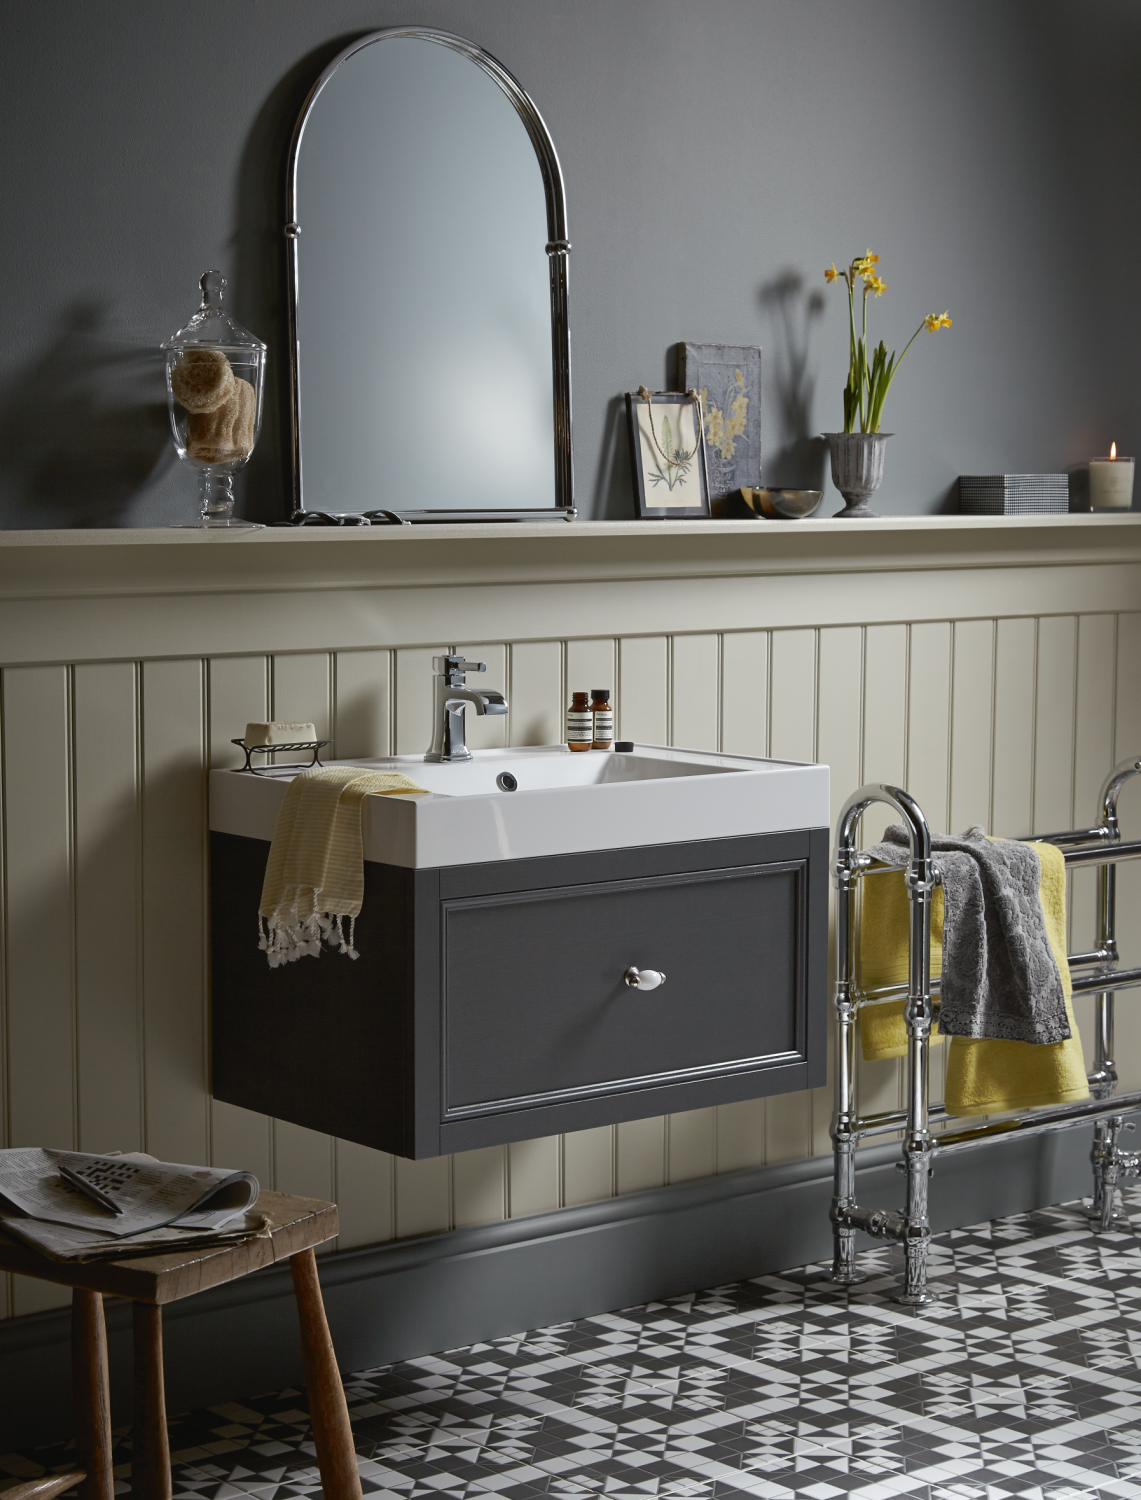 Heritage Caversham graphite grey wall hung vanity unit 1 drawer, £995 inc. vat, Cranleigh Bathroom Studios, cranleigh-bathroomstudios.co.uk